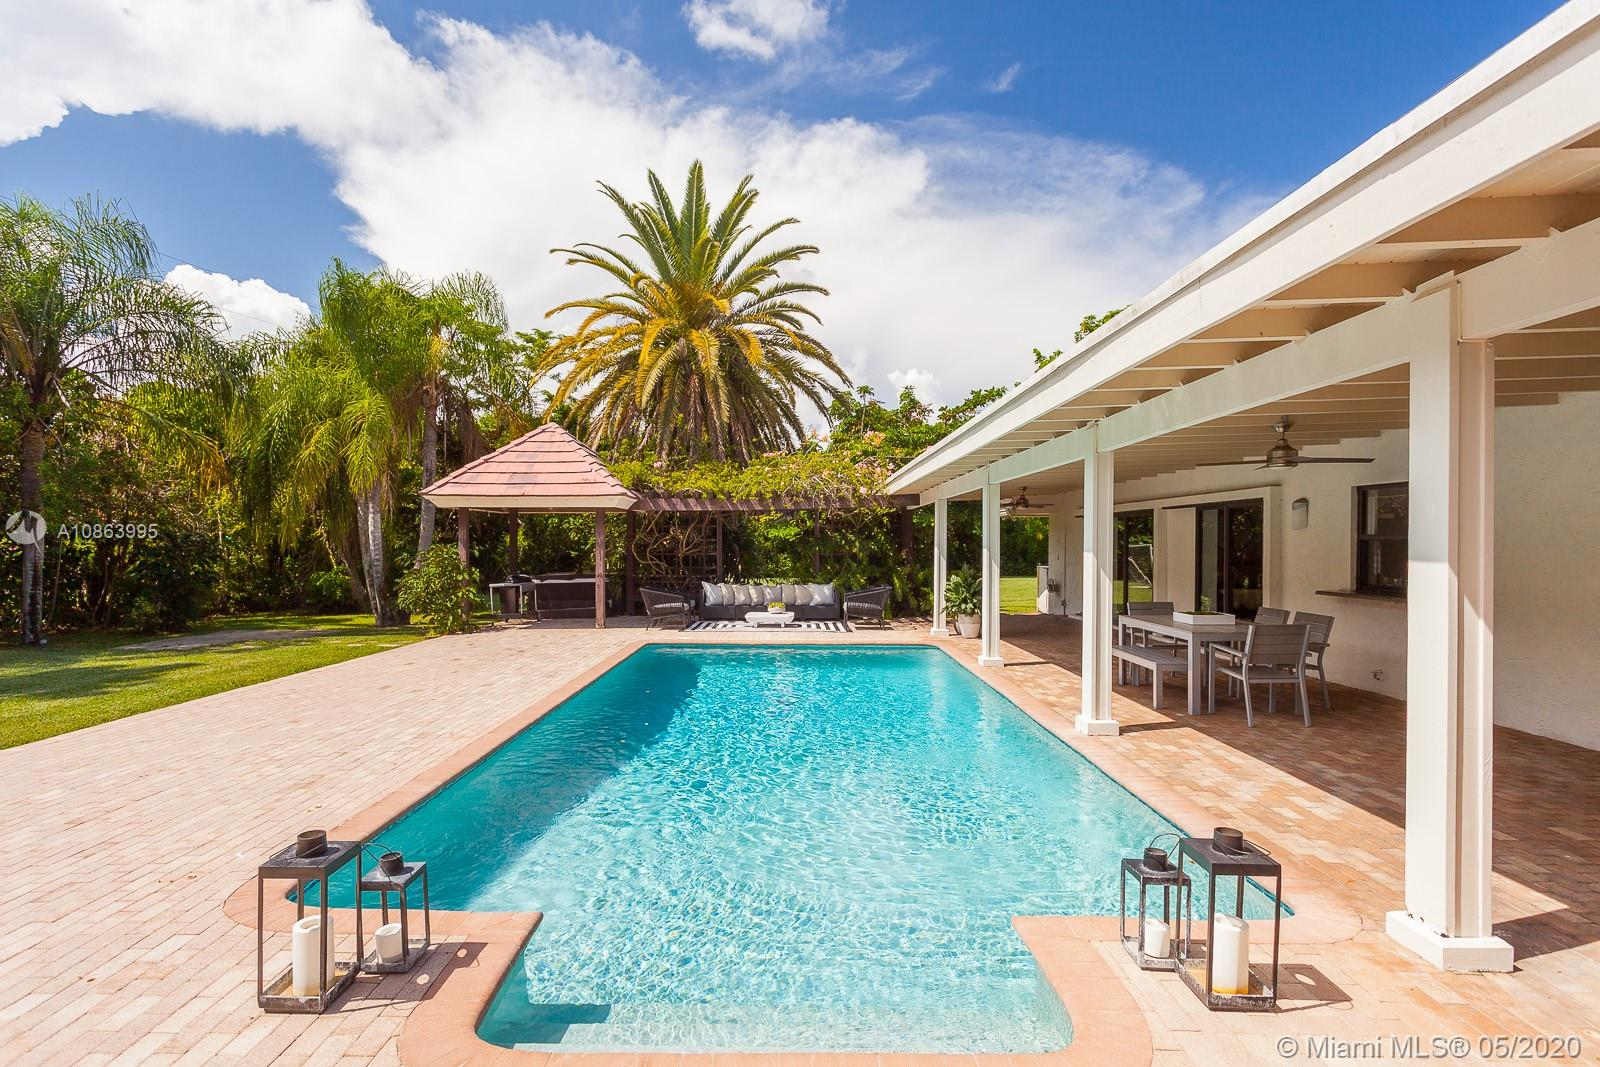 12300 SW 67 AVE, Pinecrest, Florida 33156, 4 Bedrooms Bedrooms, ,3 BathroomsBathrooms,Residential,For Sale,12300 SW 67 AVE,A10863995